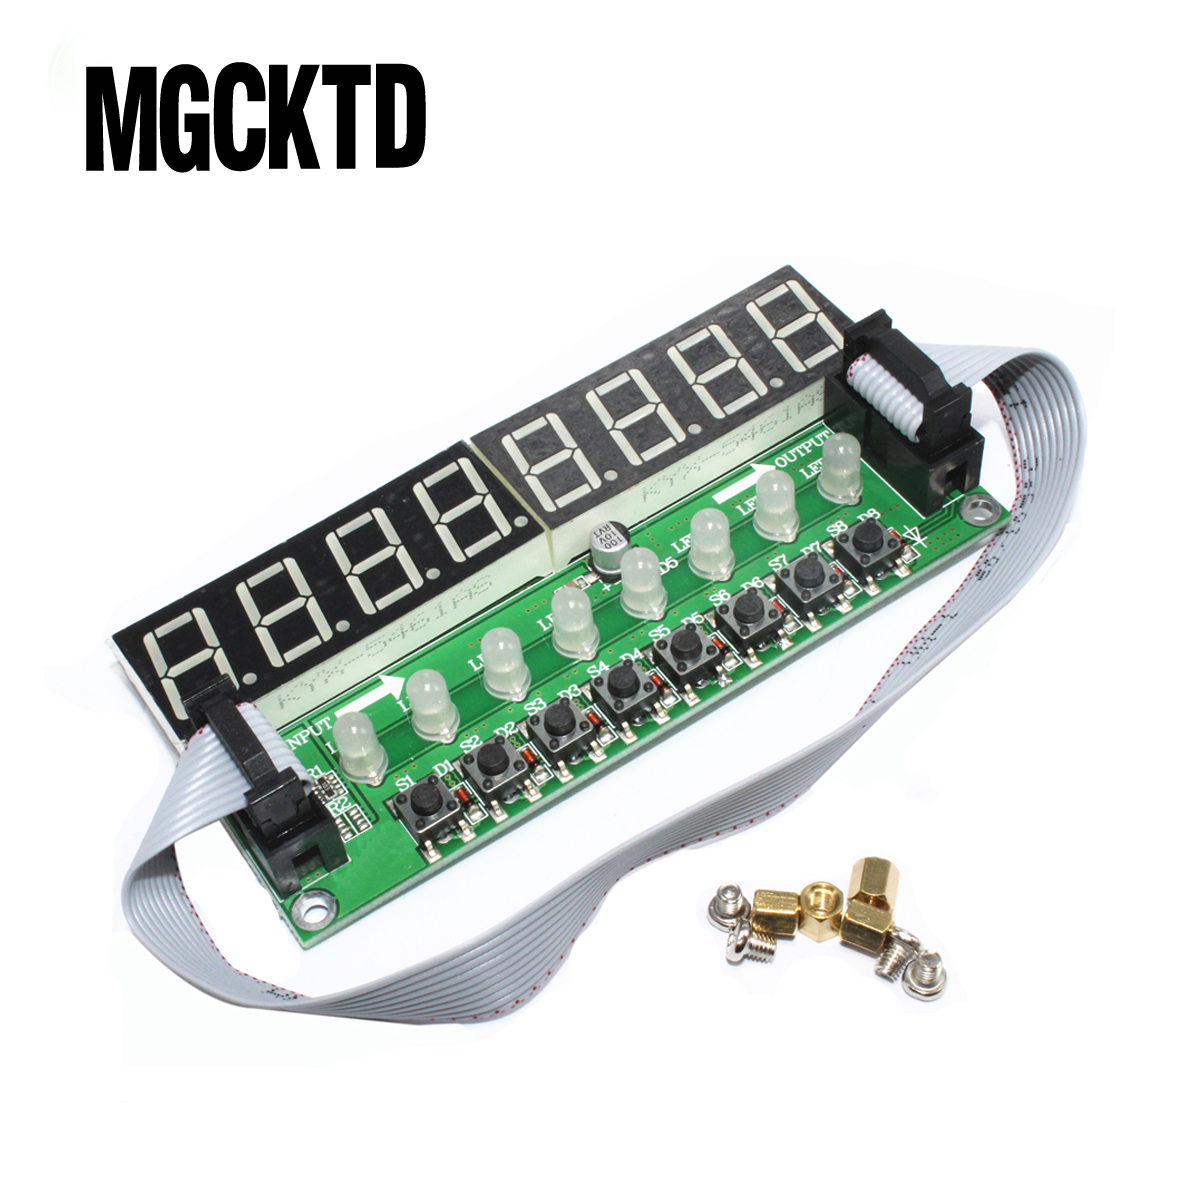 F71A 8* Digital Tube + 8* Key + 8* Double Color LED Module TM1638 Can be Cascaded Replace CH452 / MAX7219 Integrated Circuits(China)